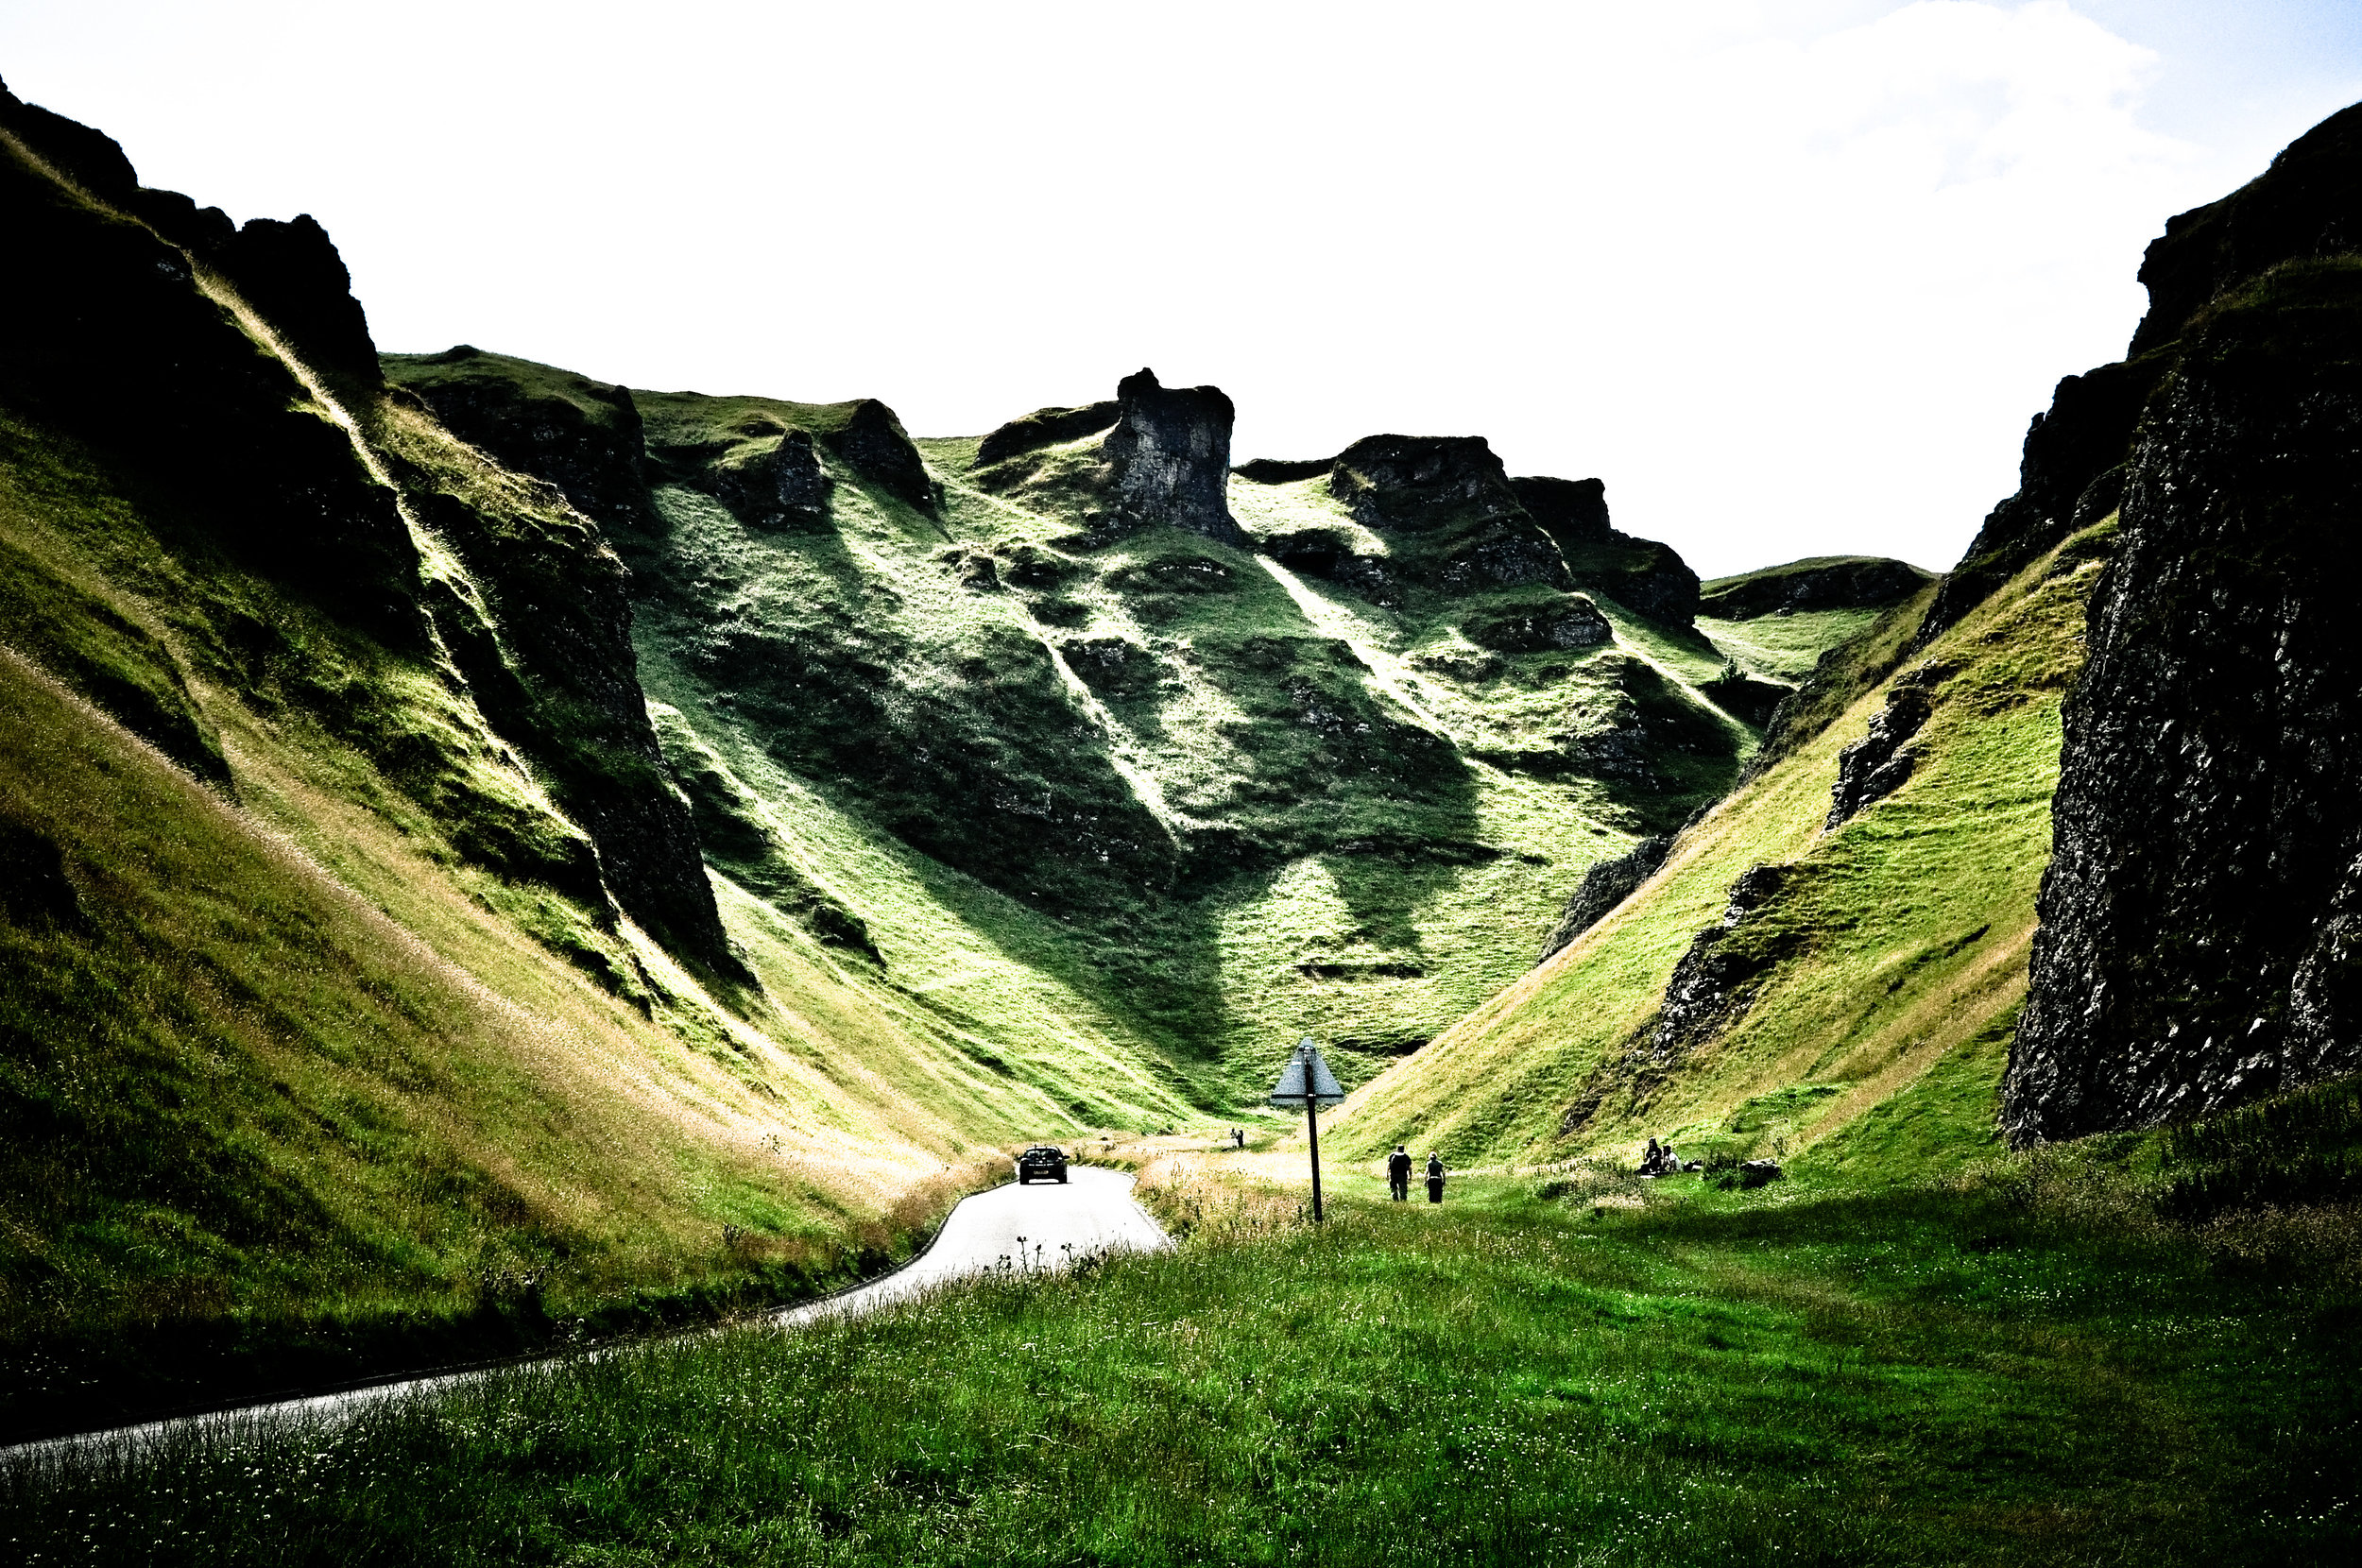 """ Winnats Pass "" by  John Clift  is licensed under  CC BY 2.0 ."